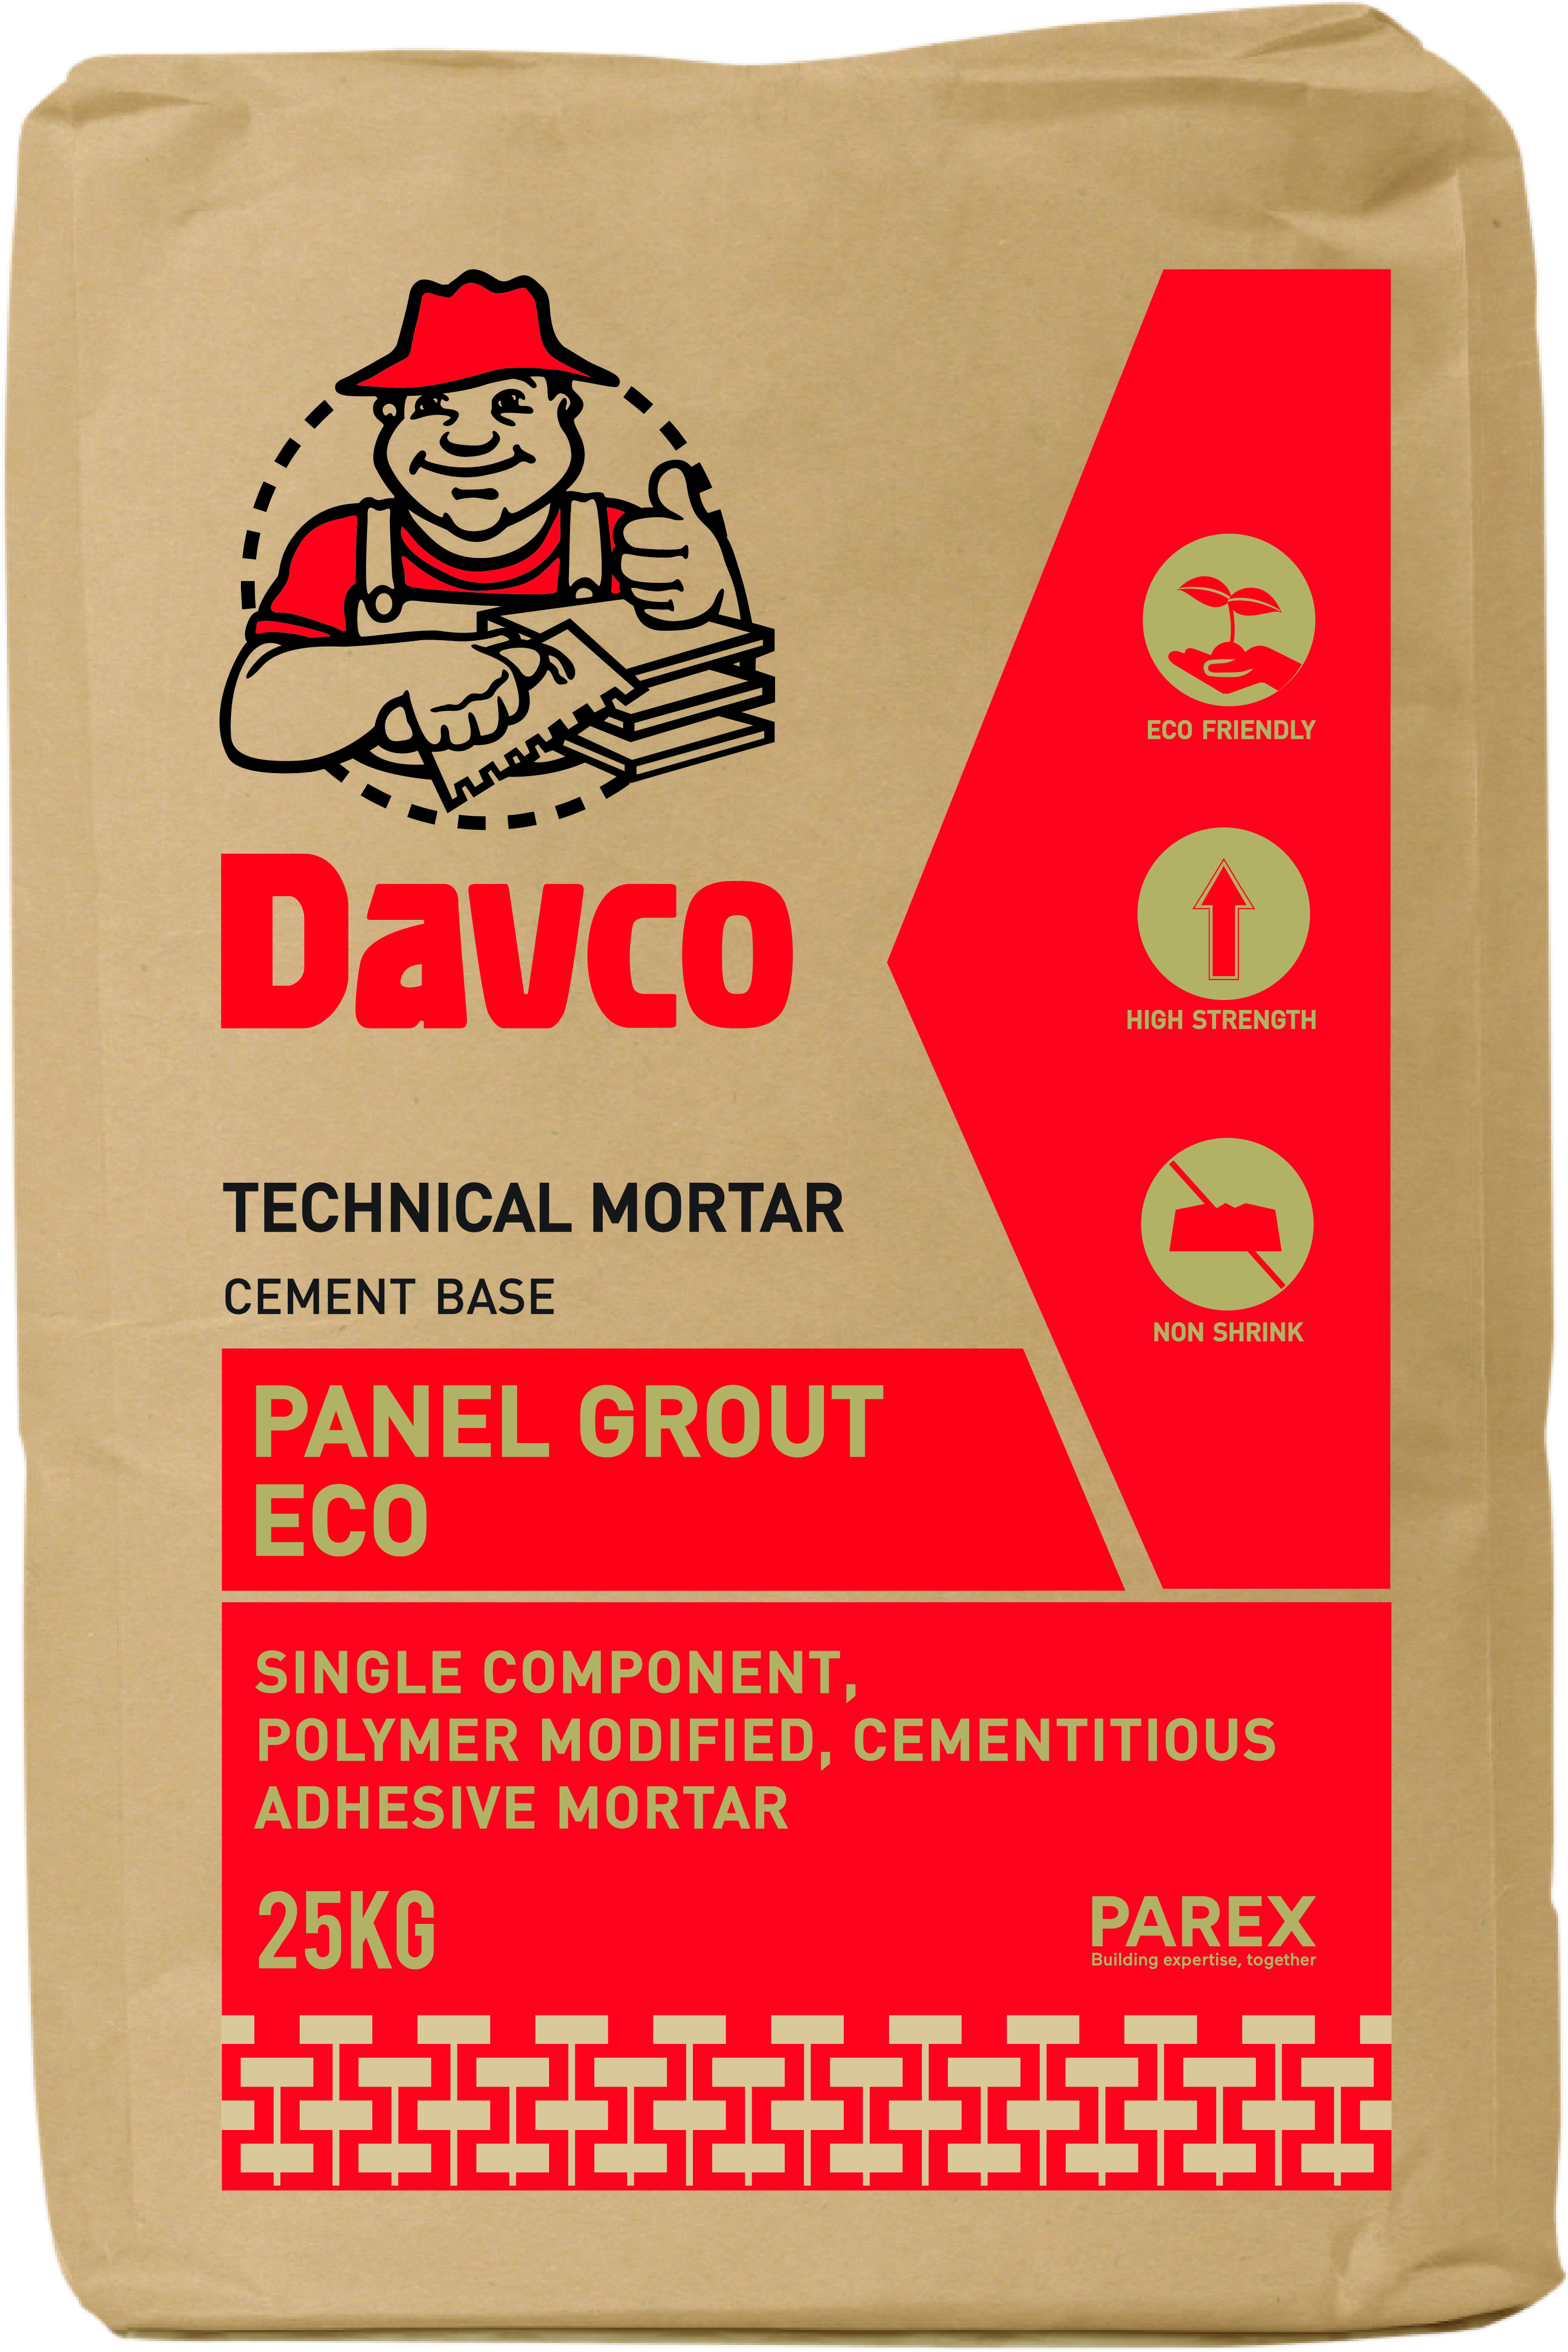 Davco Panel Grout ECO